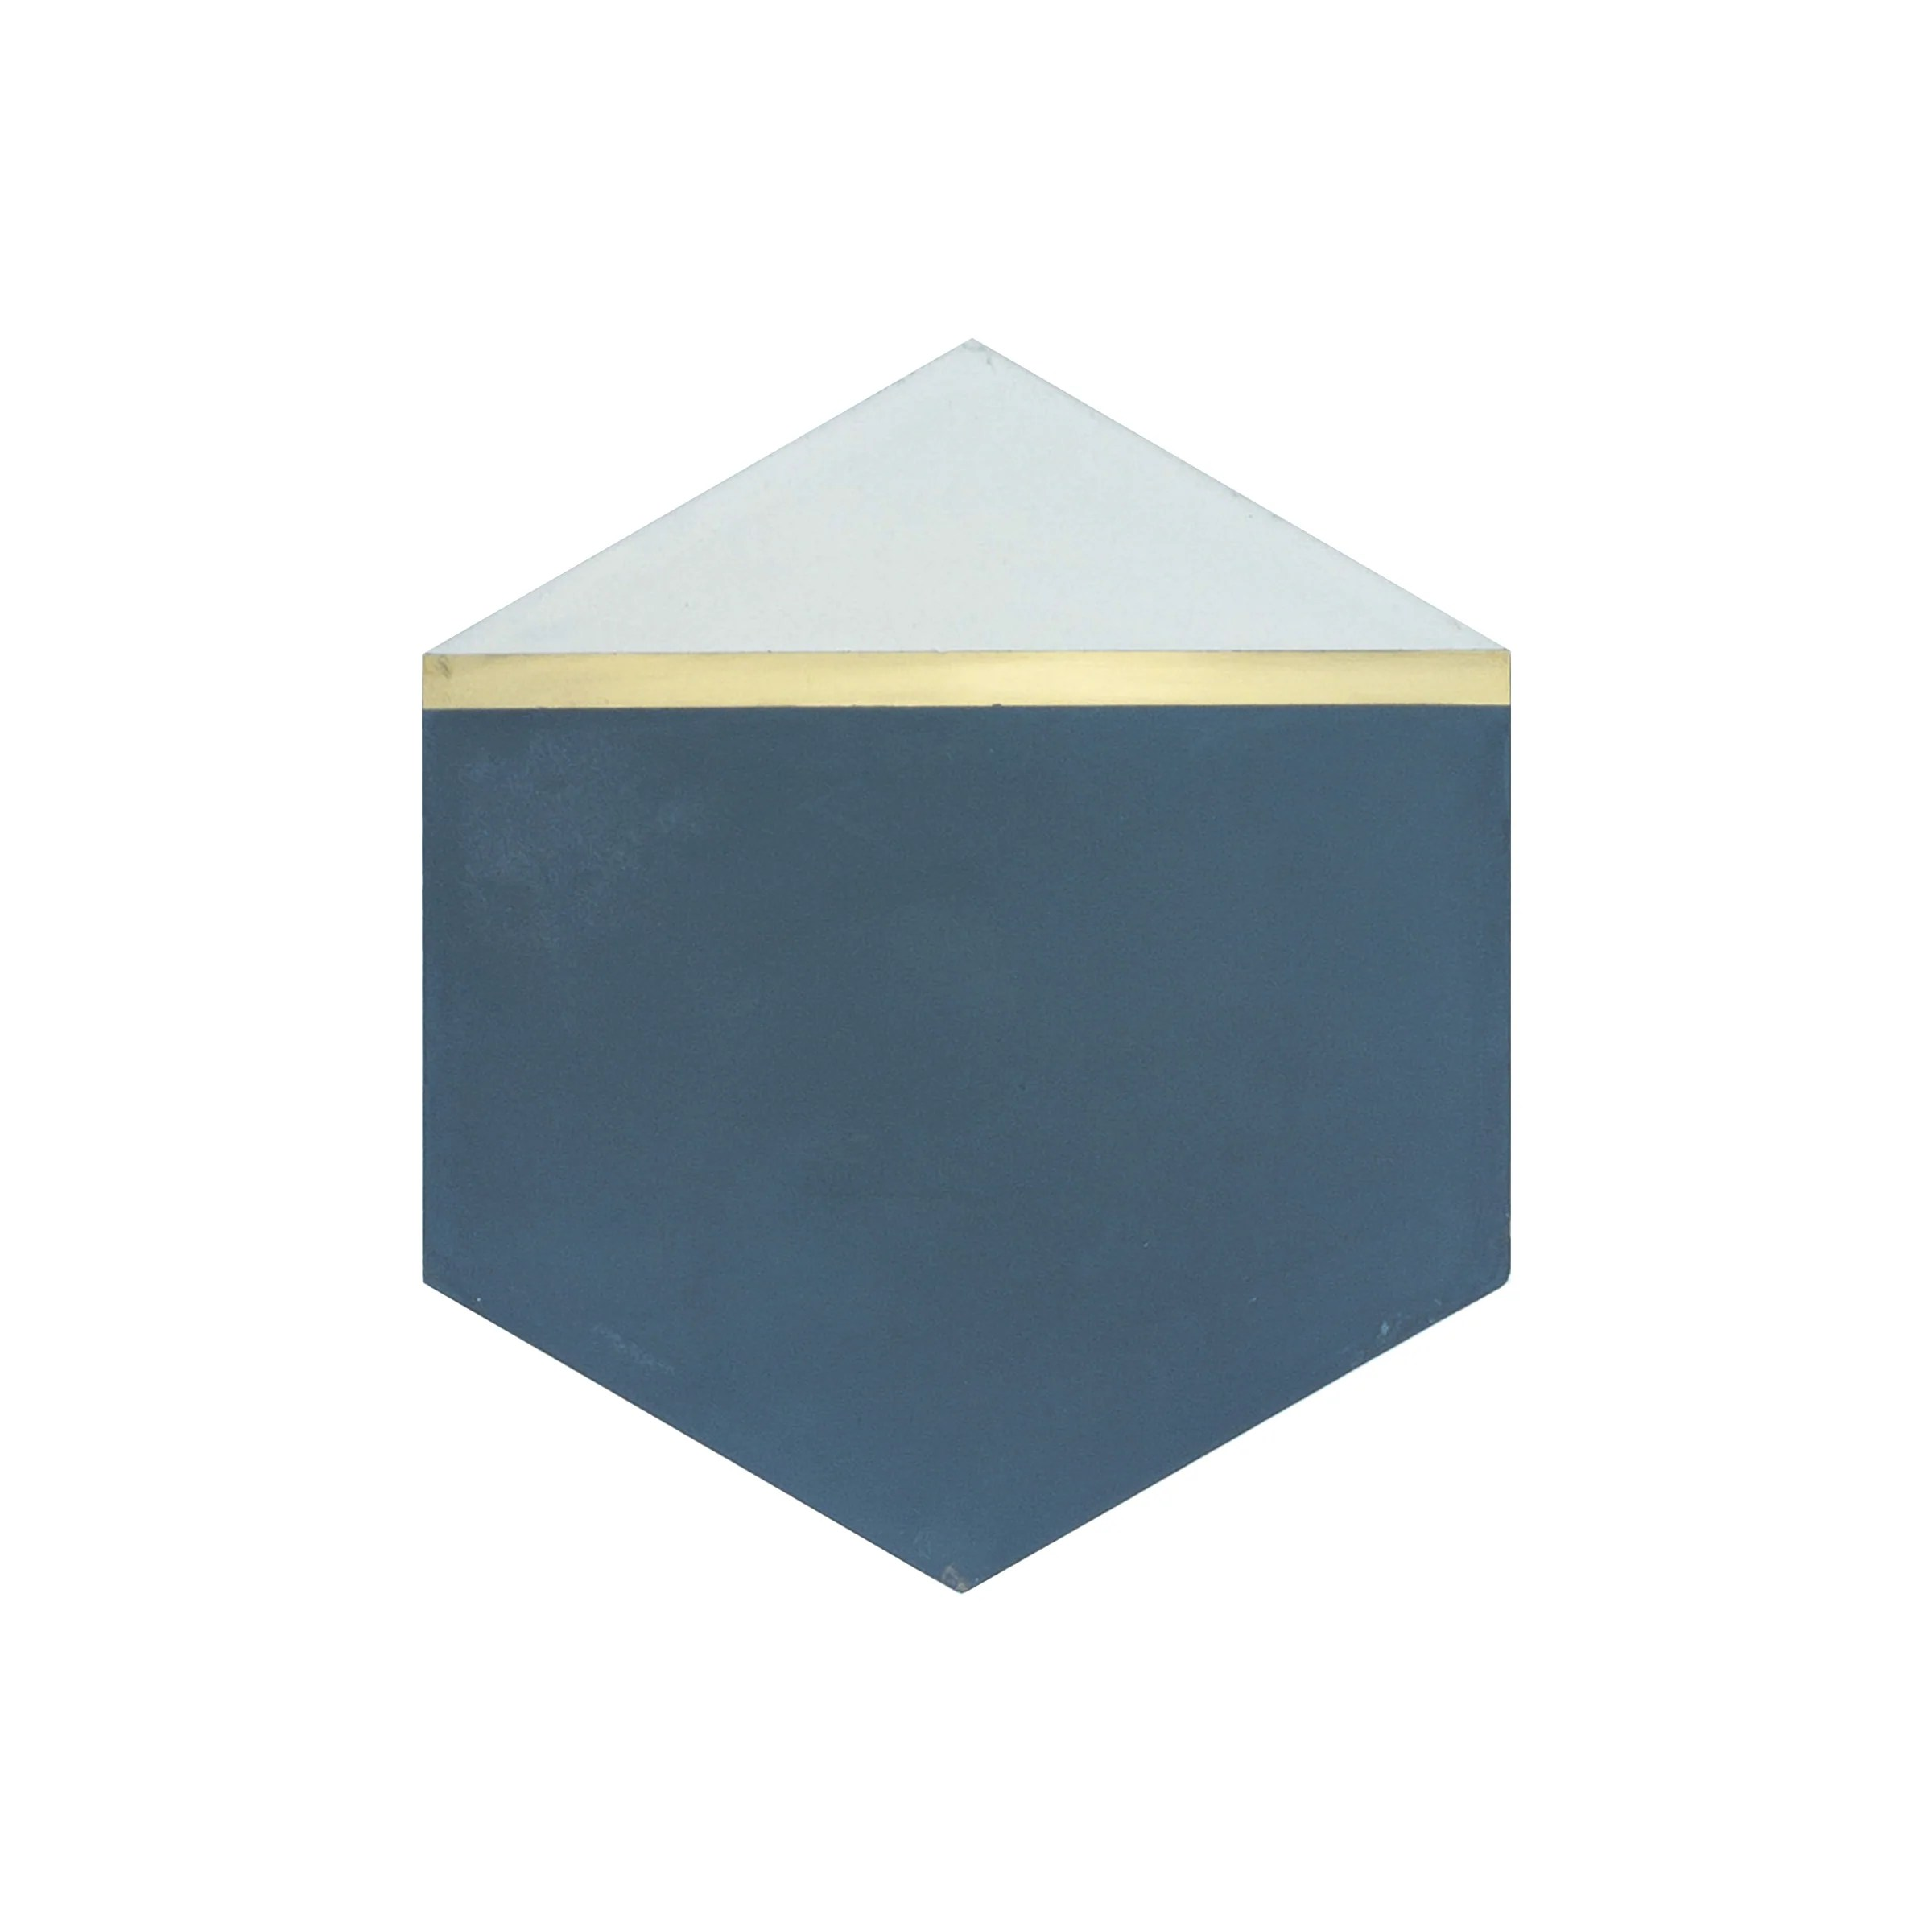 pocket square navy blue hexagon cement tile with brass inlay sample